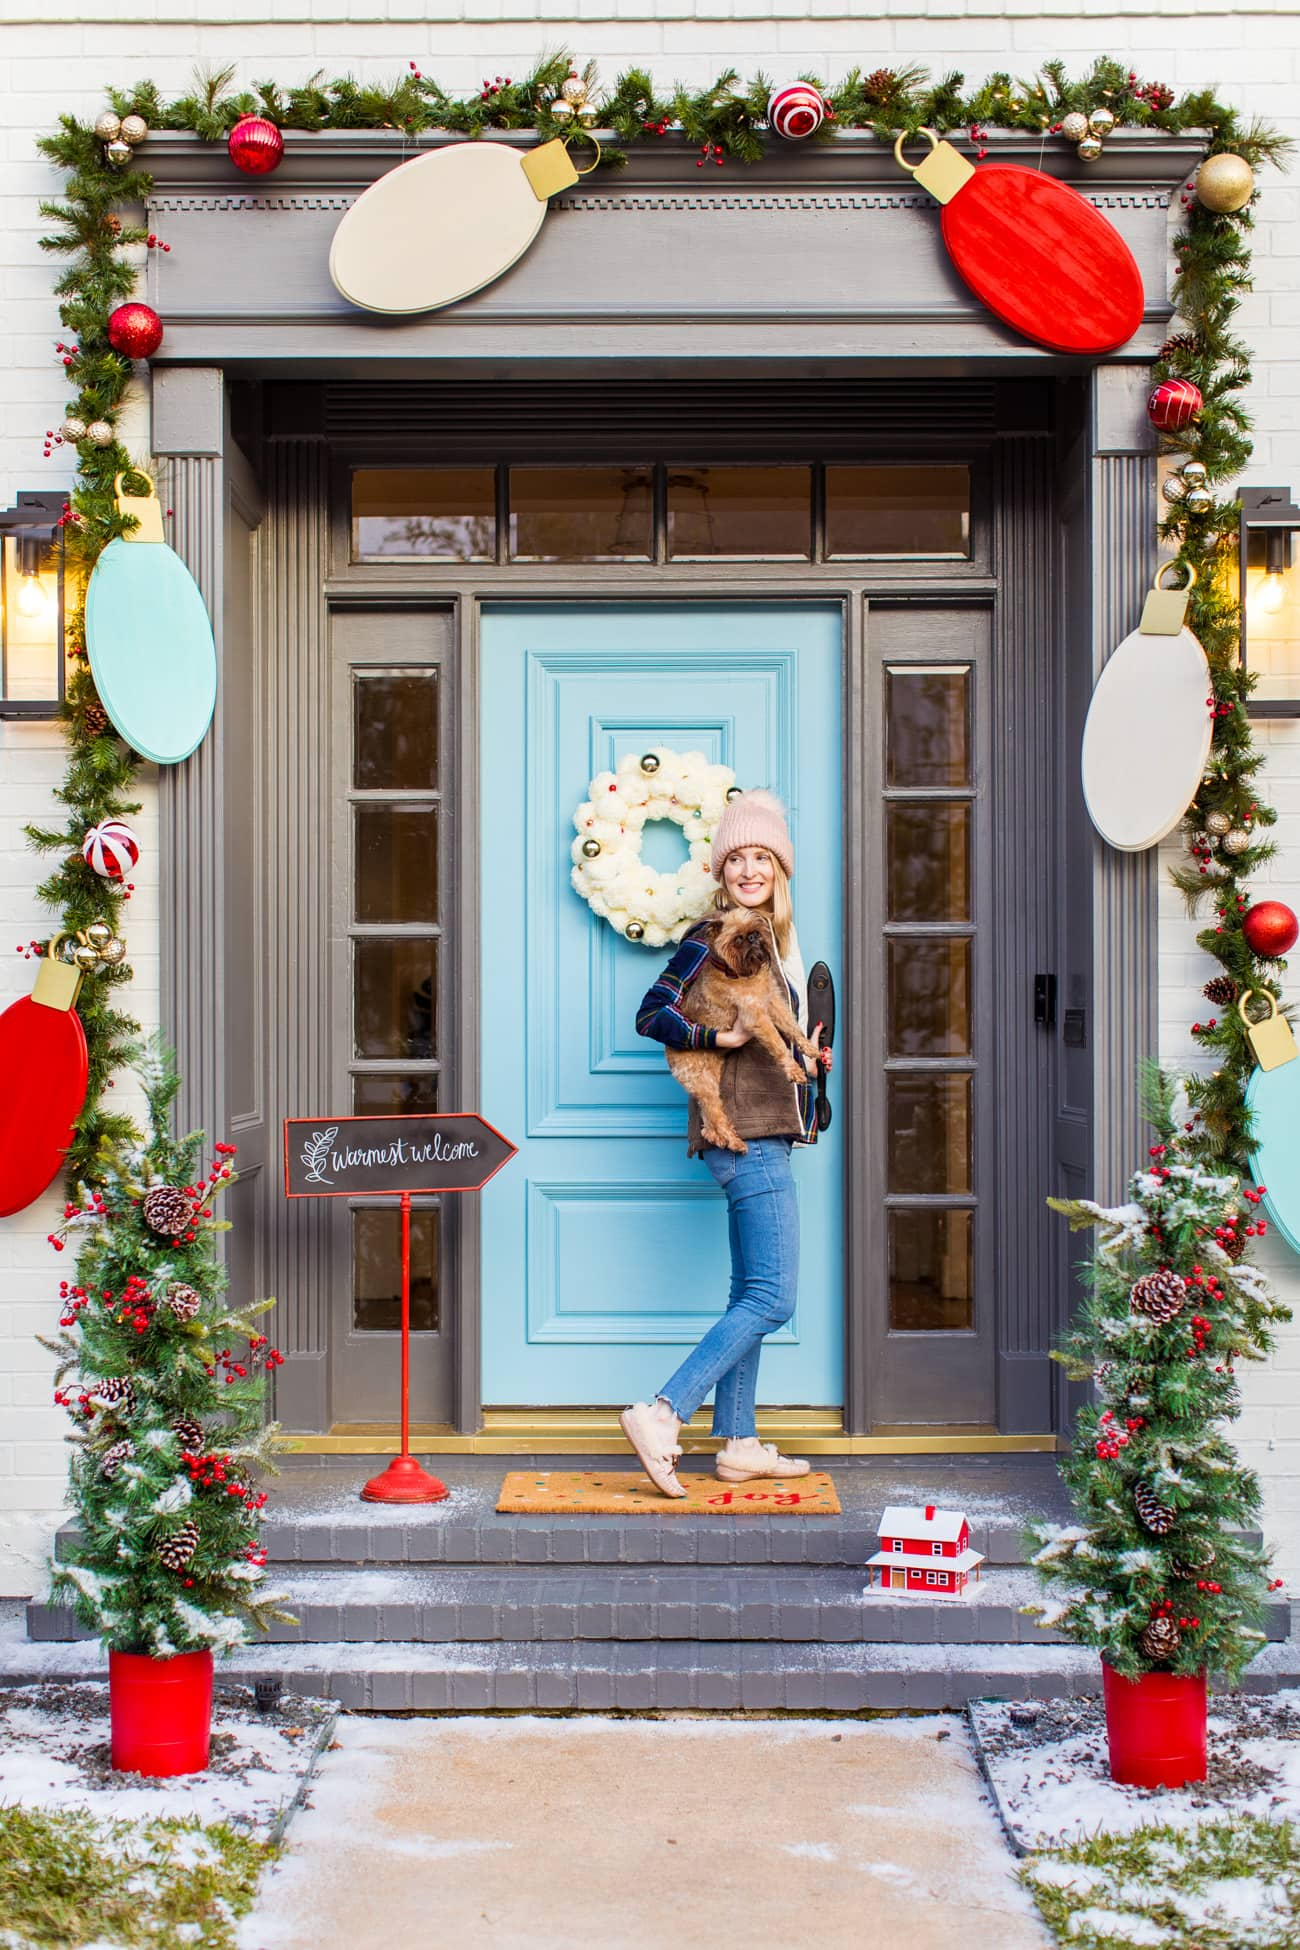 Welcome home to the cutest holiday front door! Jumbo Lights Outdoor DIY Christmas Decorations! by top Houston lifestyle blogger Ashley Rose of Sugar & Cloth #DIY #howto #christmas #holidays #decorations #decor #home #frontdoor #entrance